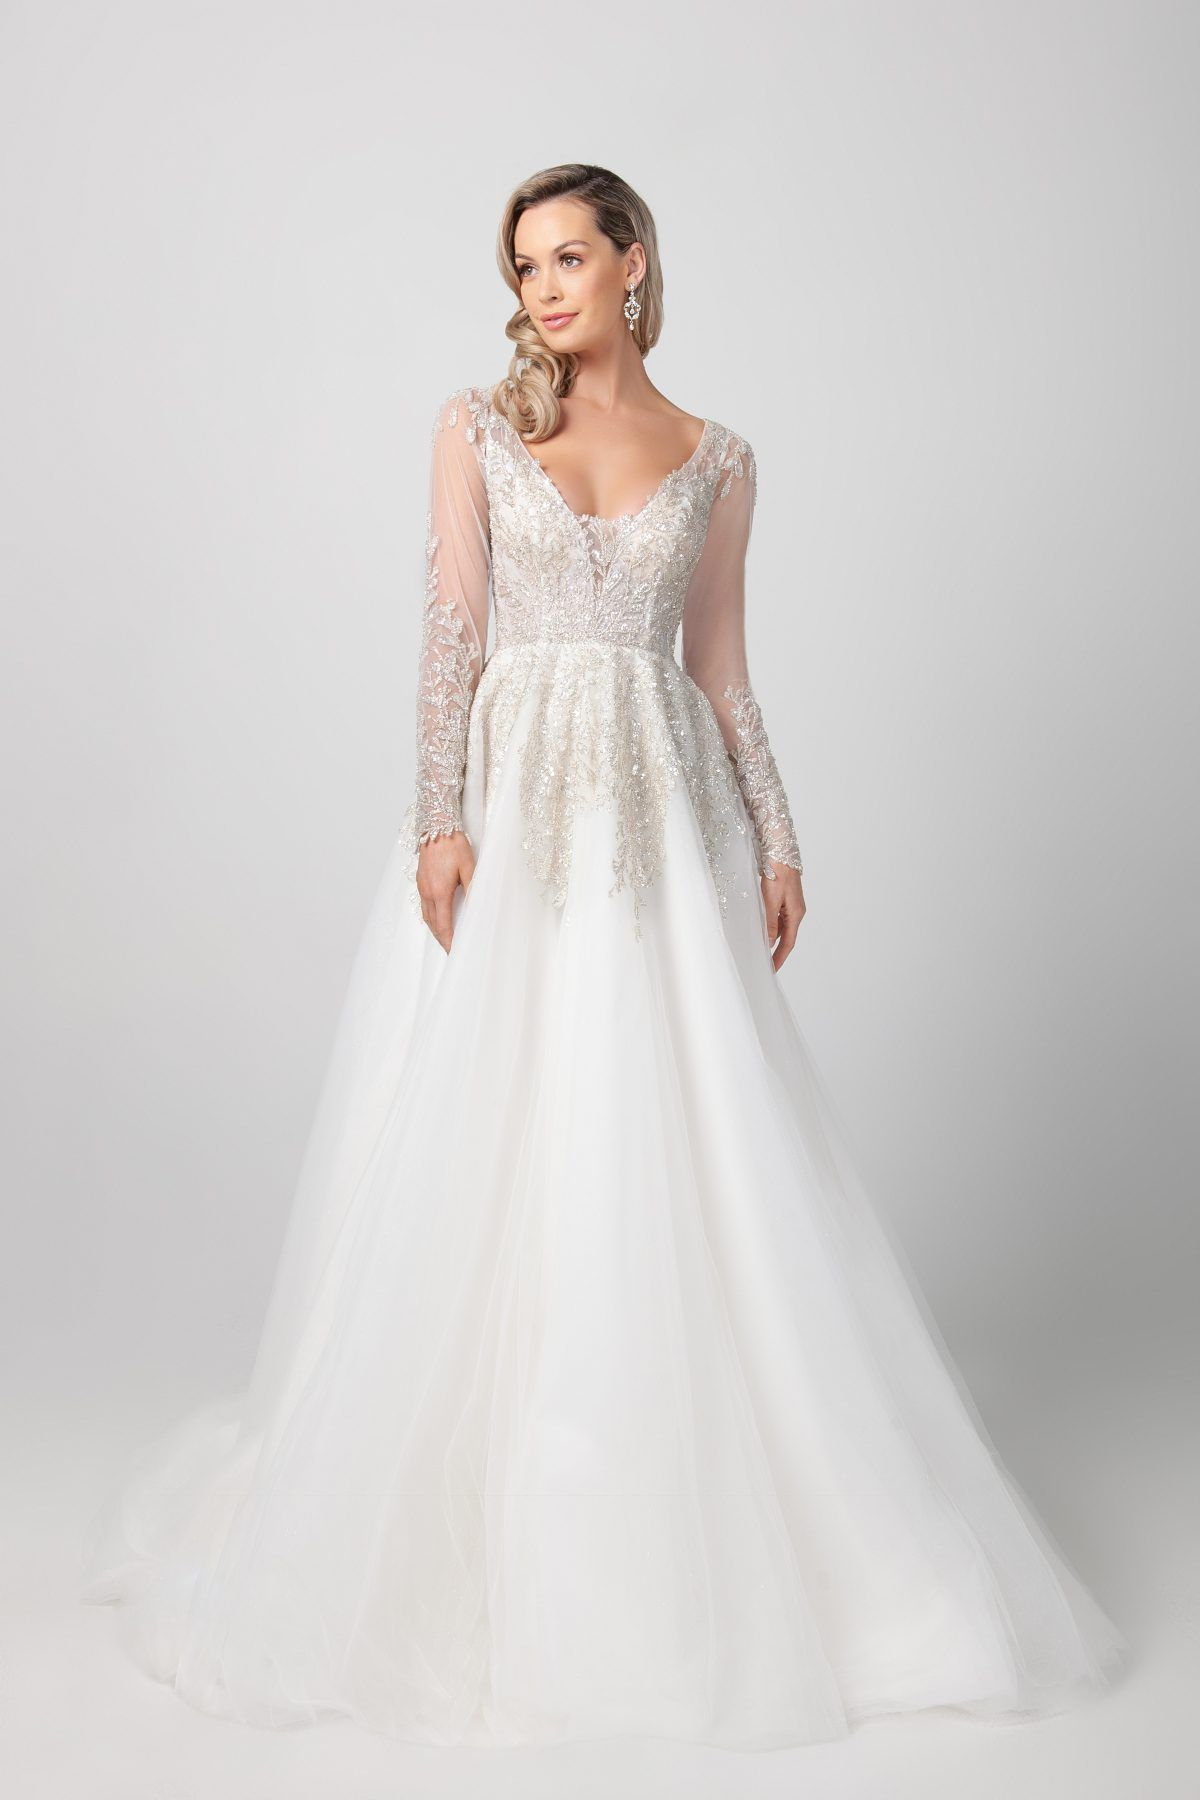 https://www.kleinfeldbridal.com/wp-content/uploads/2020/09/michelle-roth-long-sleeve-a-line-wedding-dress-with-illusion-sleeves-34295659-1200x1800.jpg